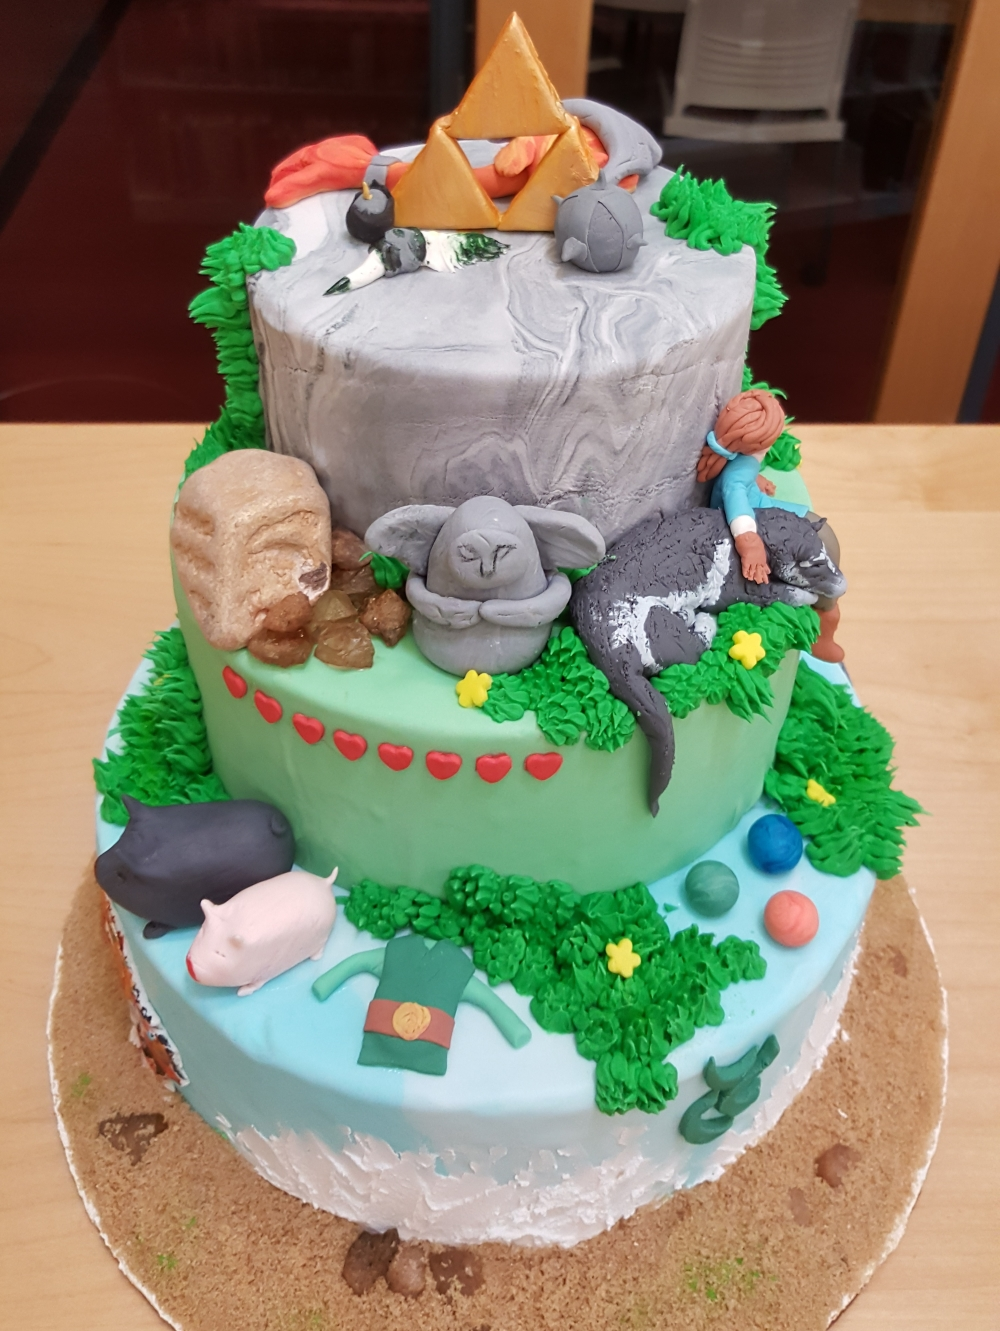 2019 Cakes Nature - top view